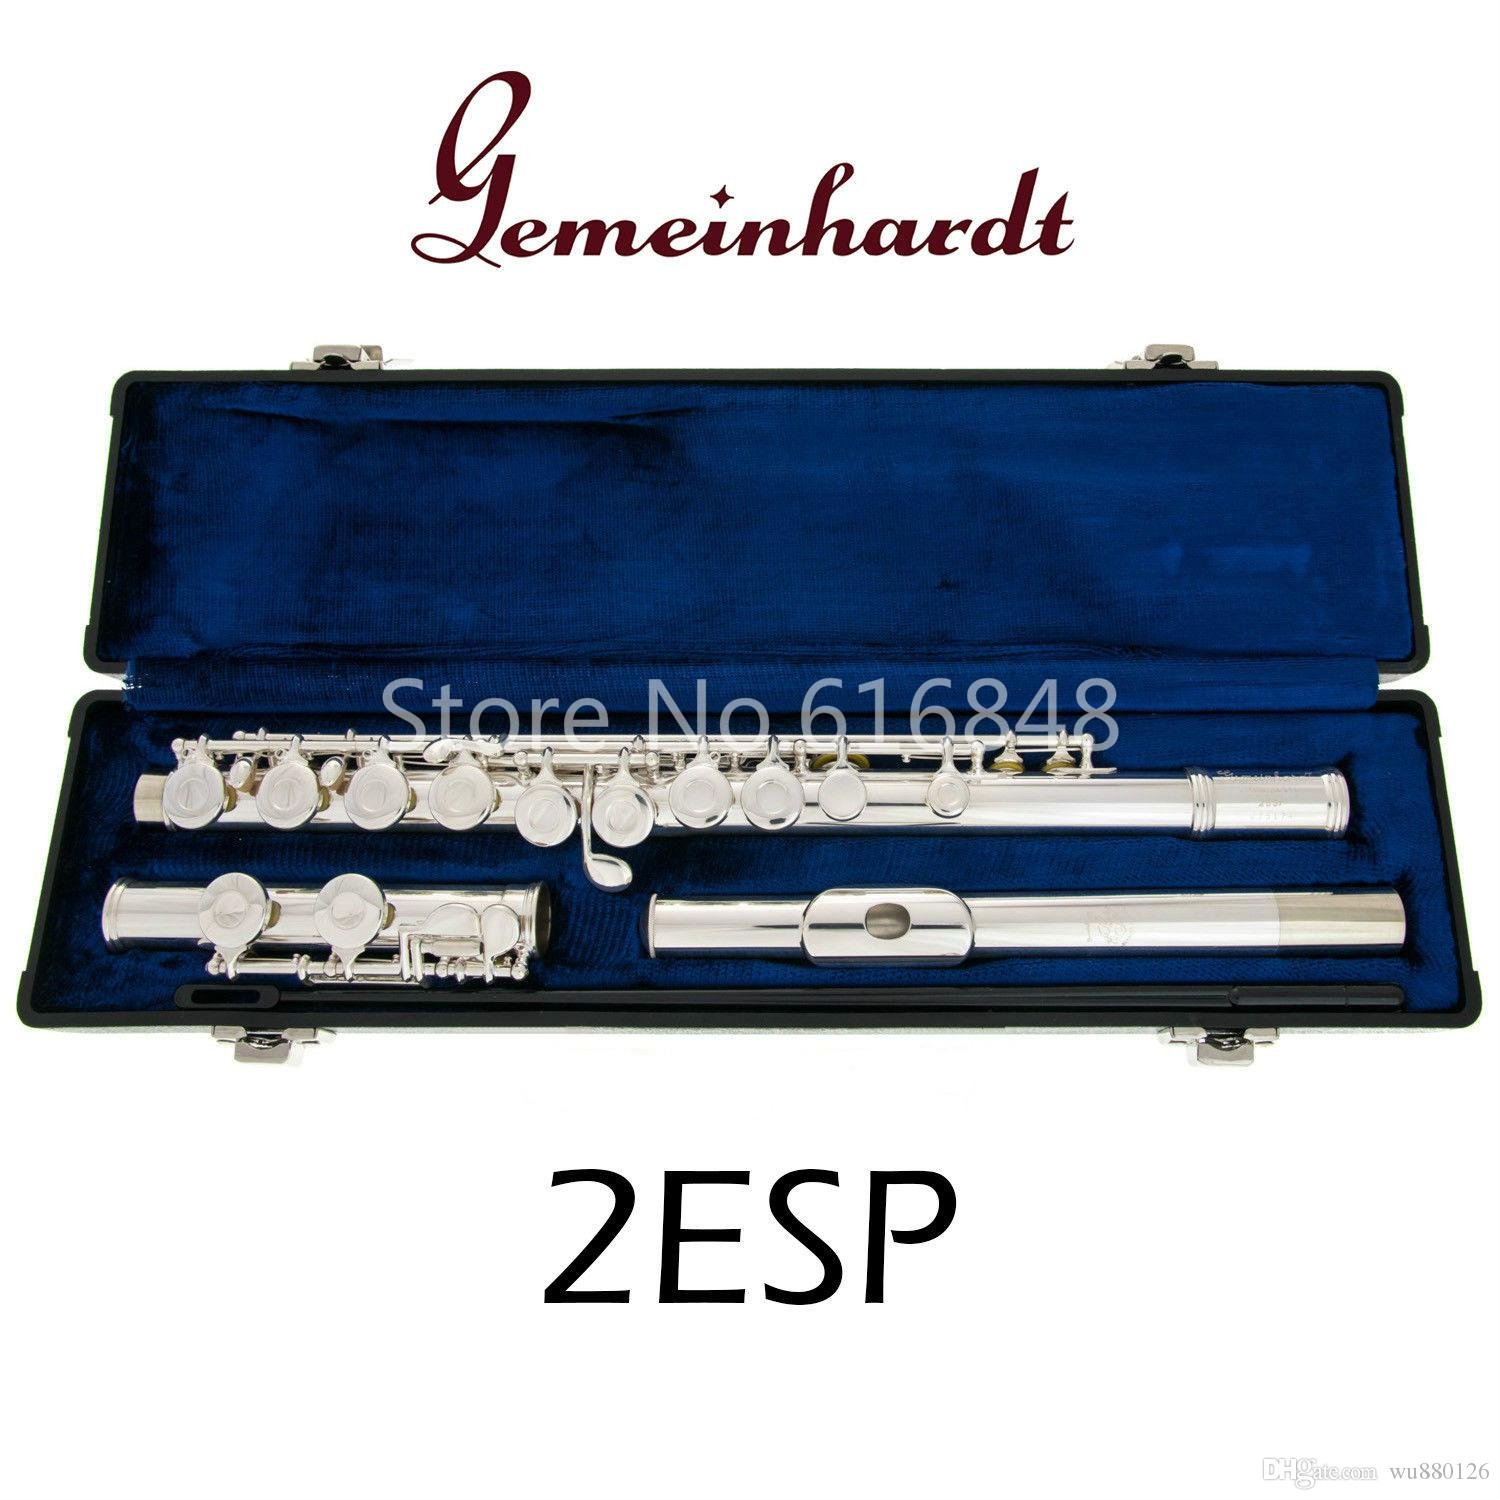 Gemeinhardt 2ESP 16 Keys Holes Closed C Tune Flute Cupronickel Silver Plated New High Quality Flute Brand Musical Instrument With Case